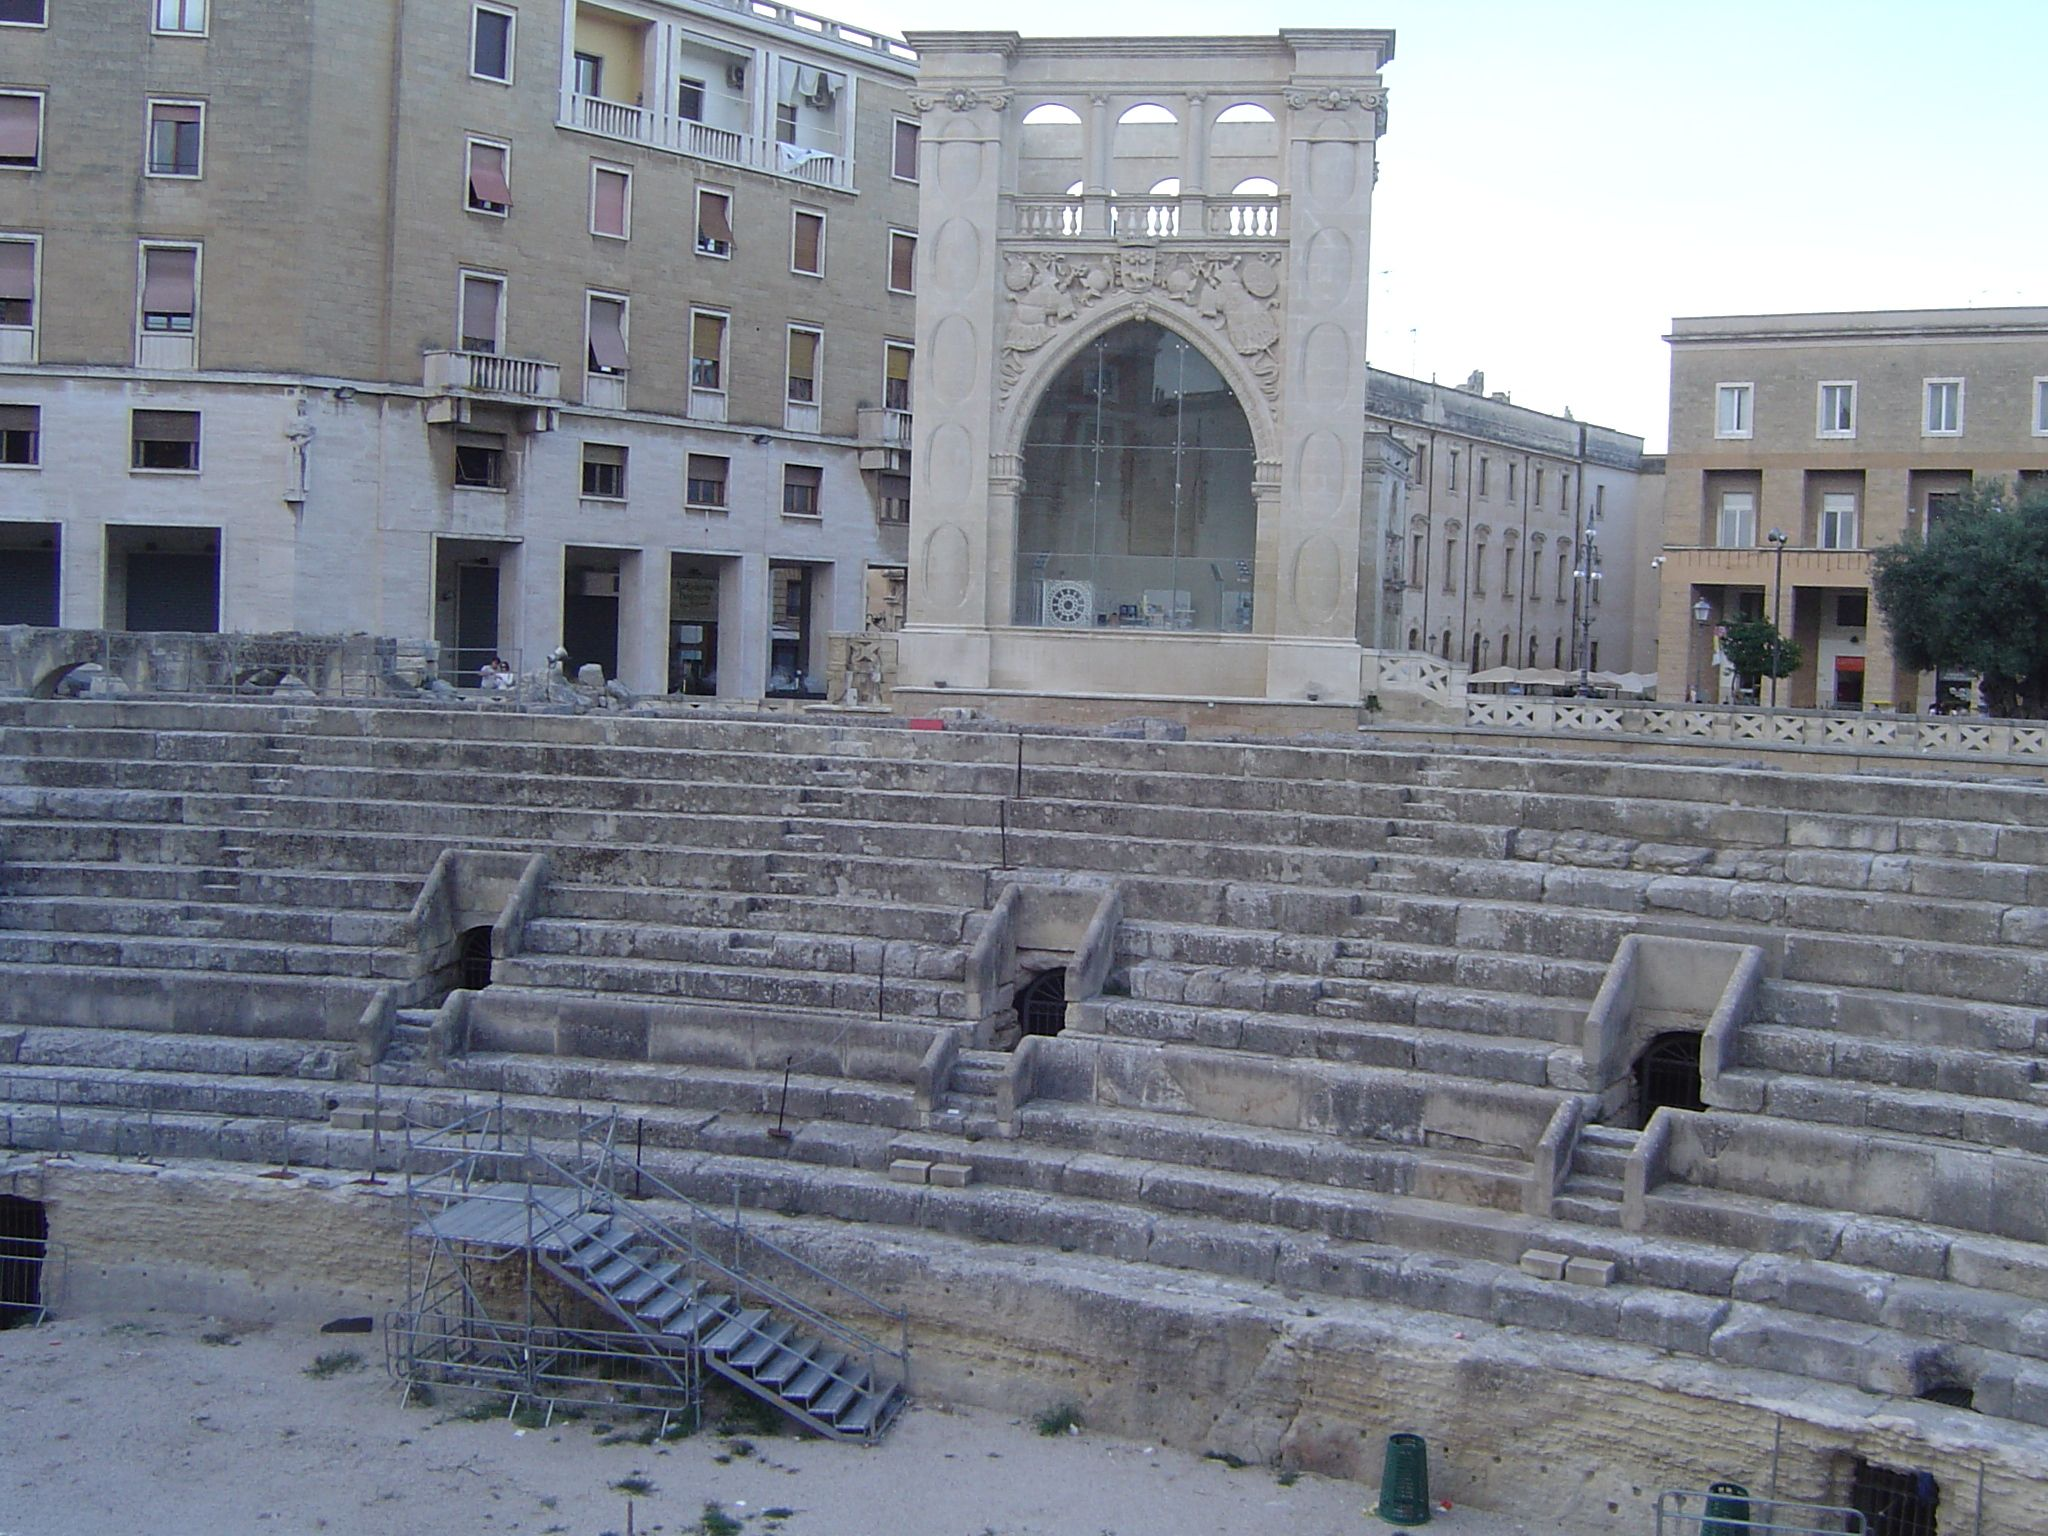 Roman Anphitheatre of Lecce http://www.pugliaandculture.com/touristic-places-in-puglia/lecce-the-baroque-town